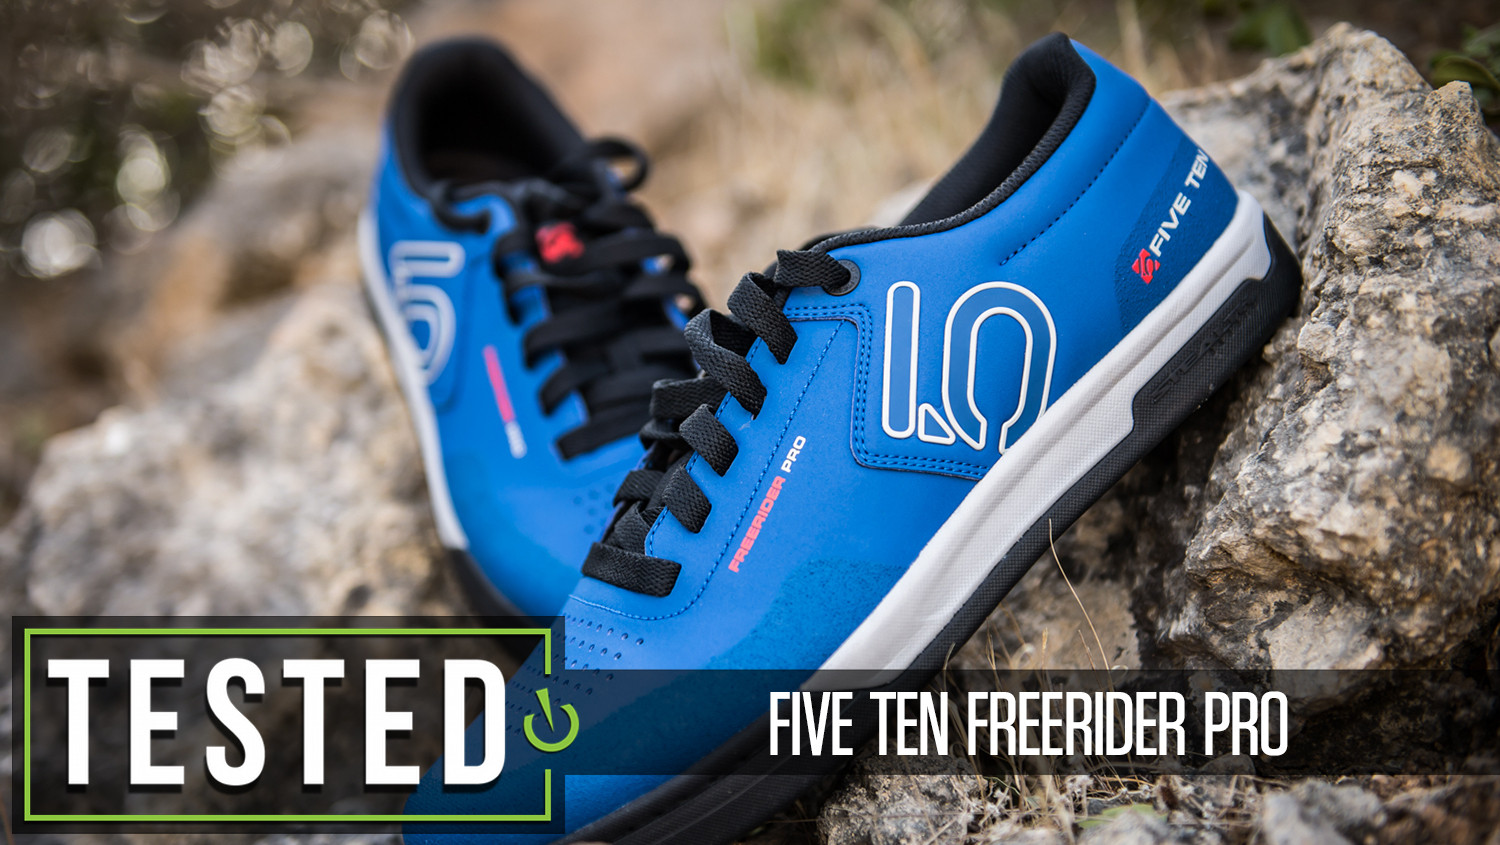 Tested: Five Ten Freerider Pro Shoe